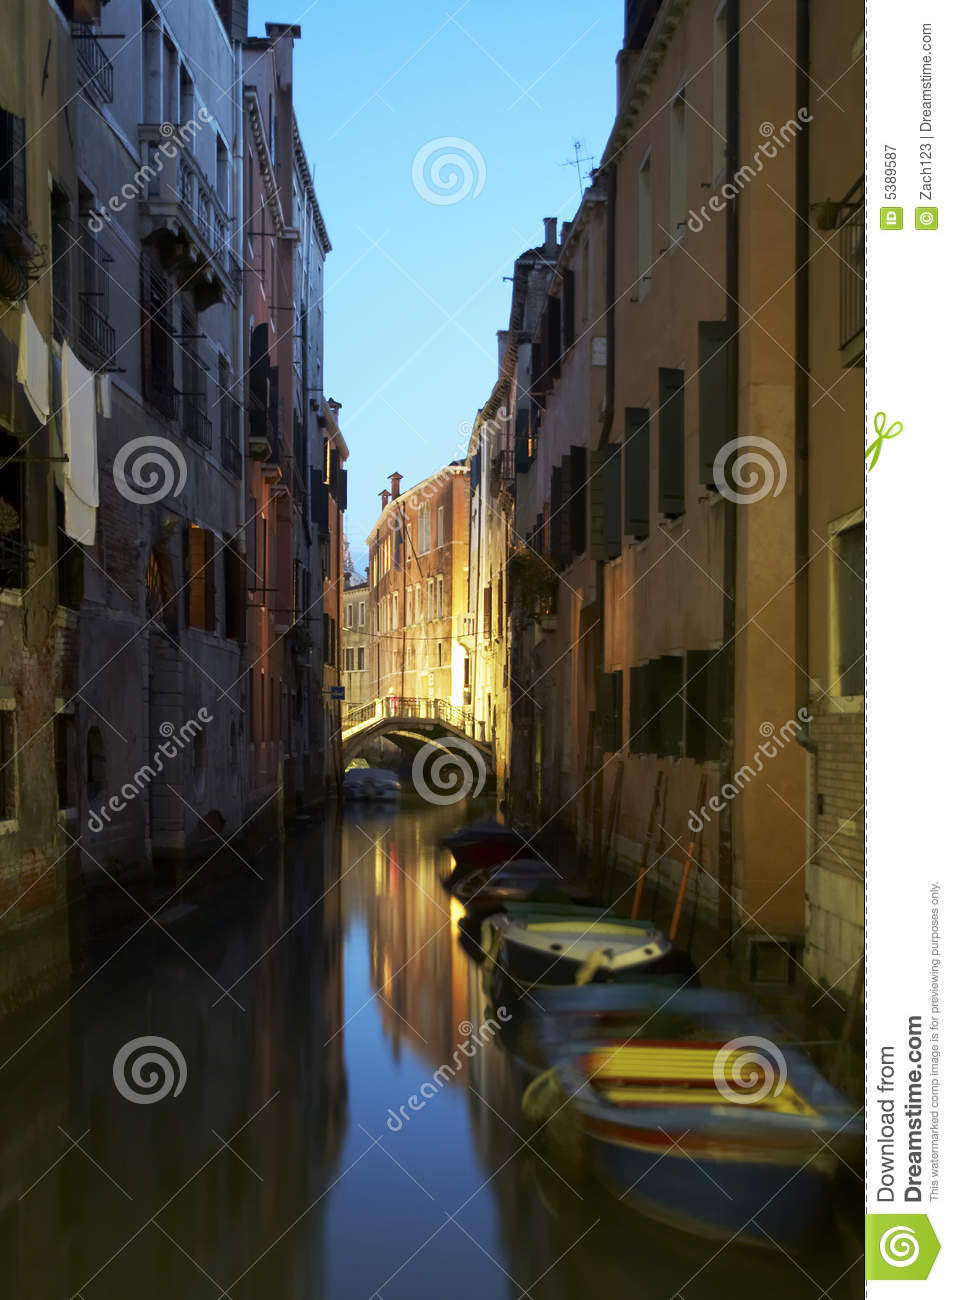 Stock Photo of Canal in Venice